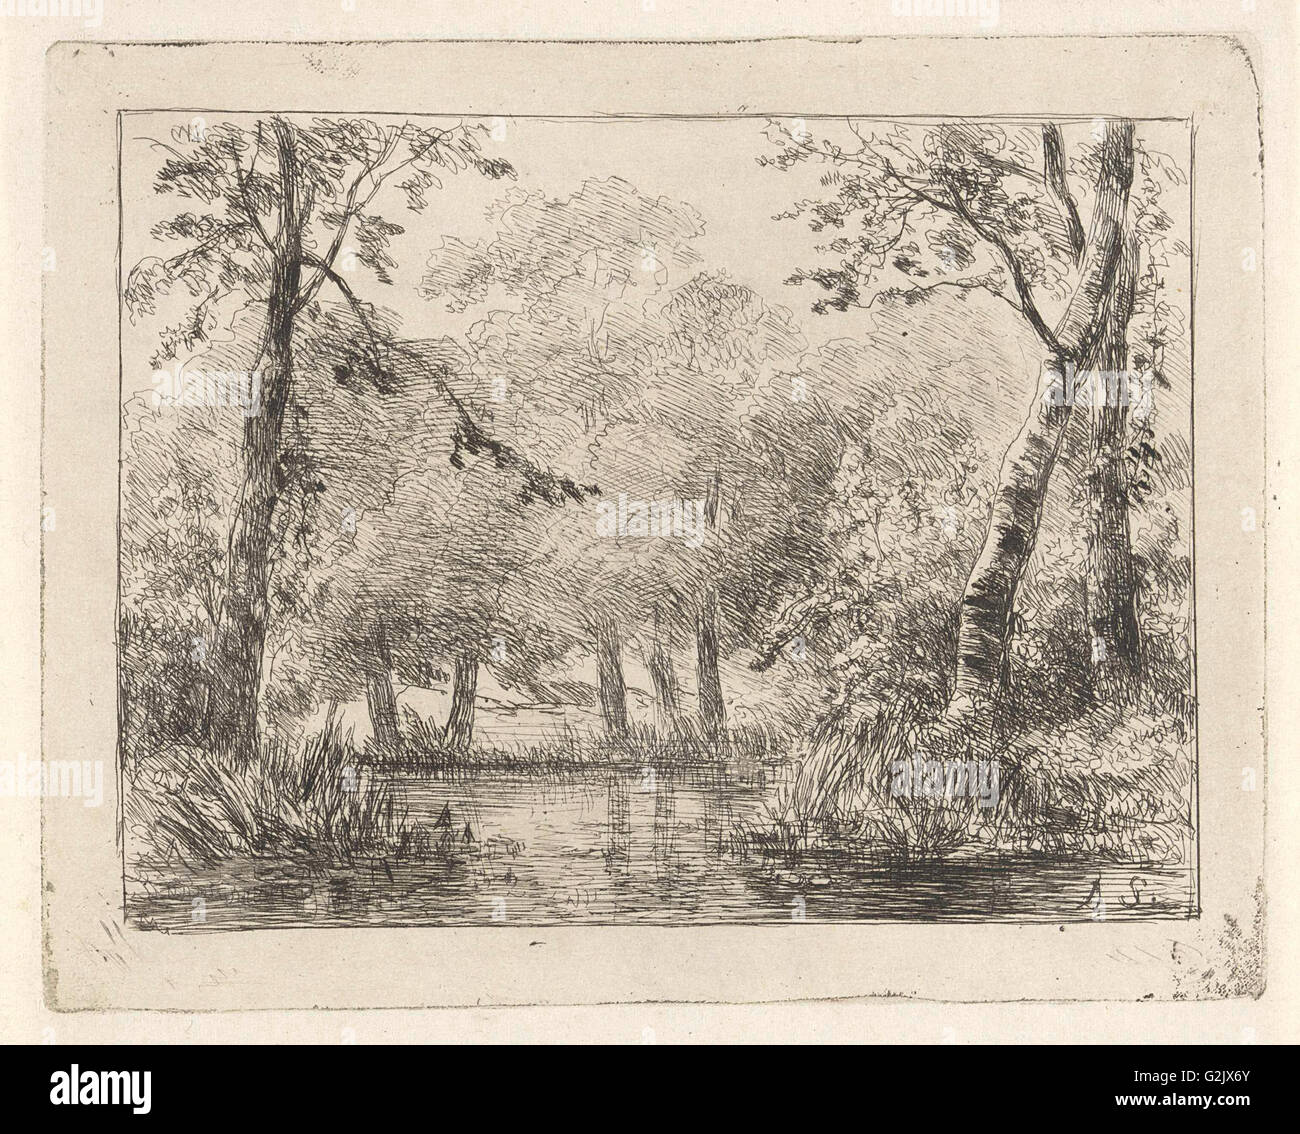 Forest scene with pond, Andreas Schelfhout, 1852 - Stock Image